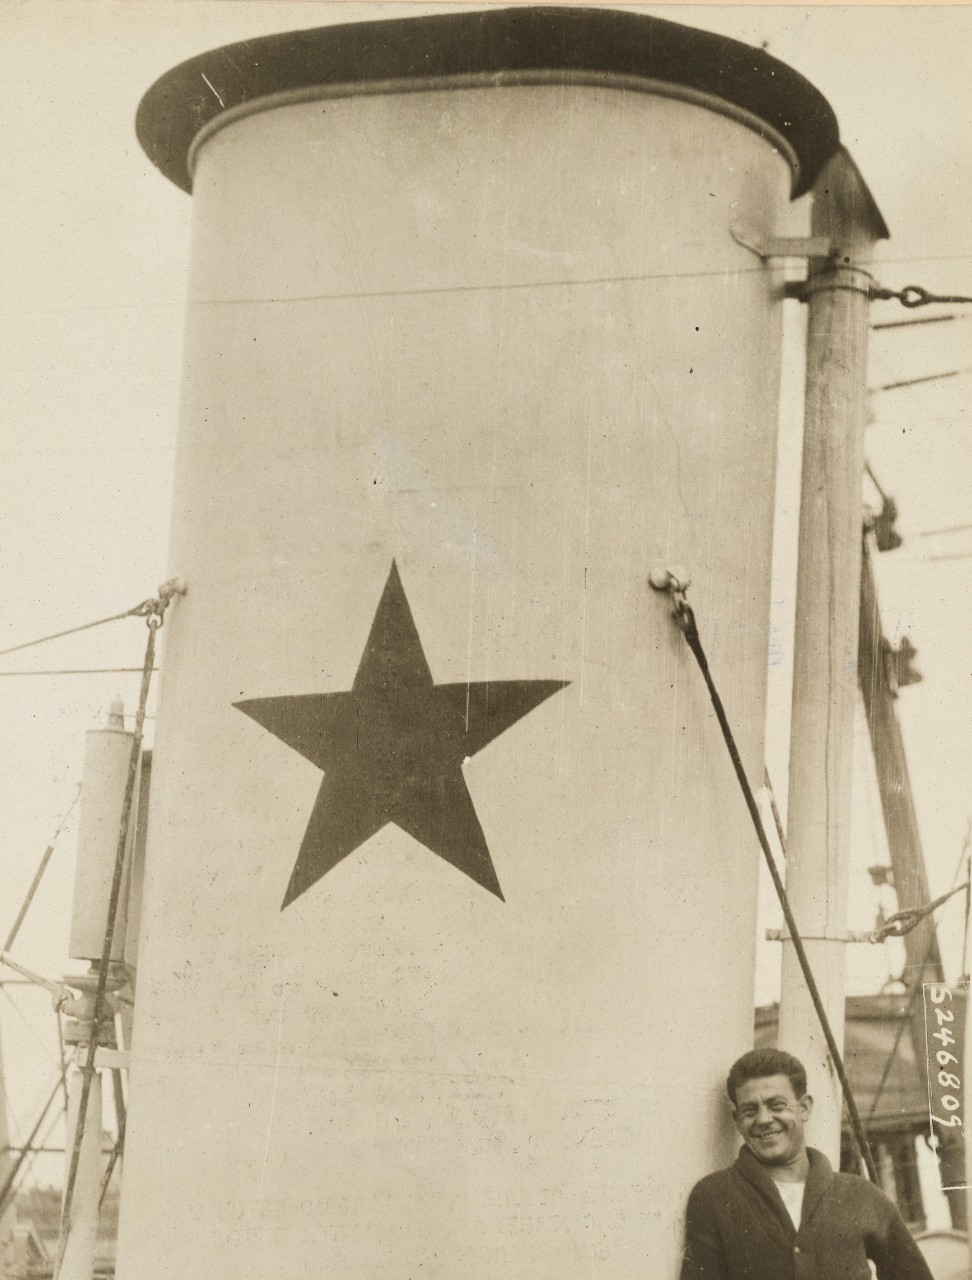 A star on the forward funnel of a U.S. Navy destroyer indicated that it had sunk a German submarine. National Archives 26432980